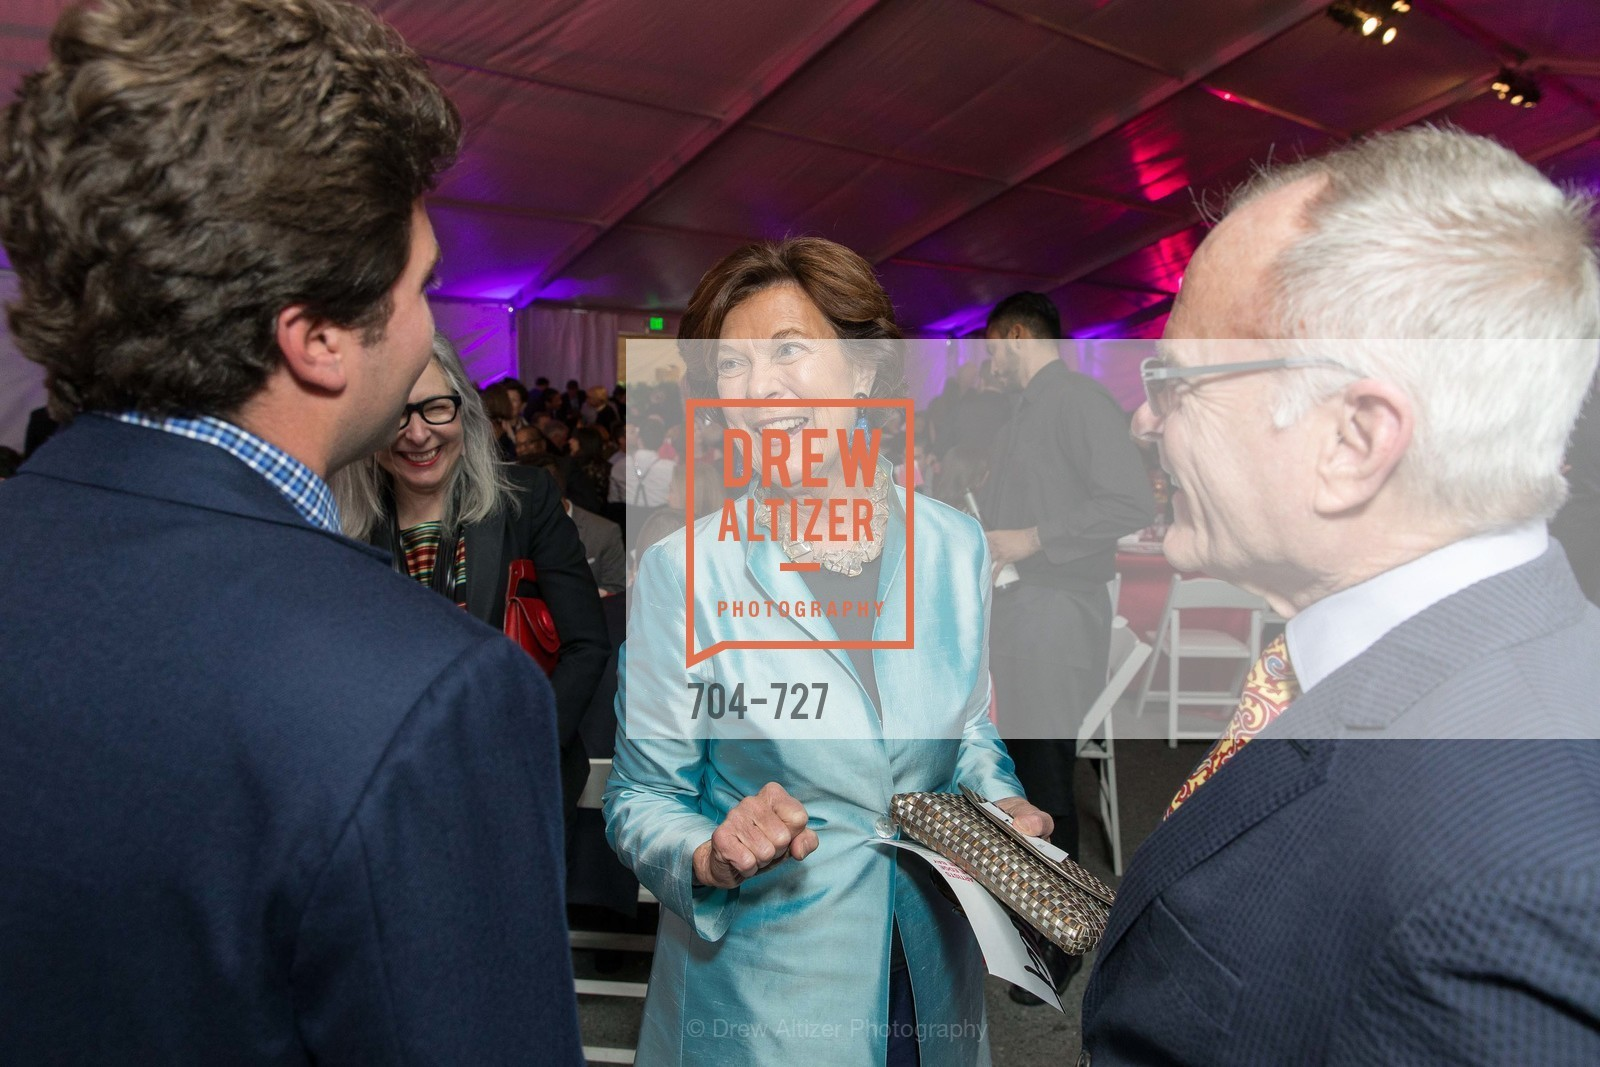 Matthew Goldman, Mary Robinson, Andrew Belschner, SAN FRANCISCO ART INSTITUTE Gala Honoring Art Visionary and Advocate ROSELYNE CHROMAN SWIG, US, May 14th, 2015,Drew Altizer, Drew Altizer Photography, full-service agency, private events, San Francisco photographer, photographer california